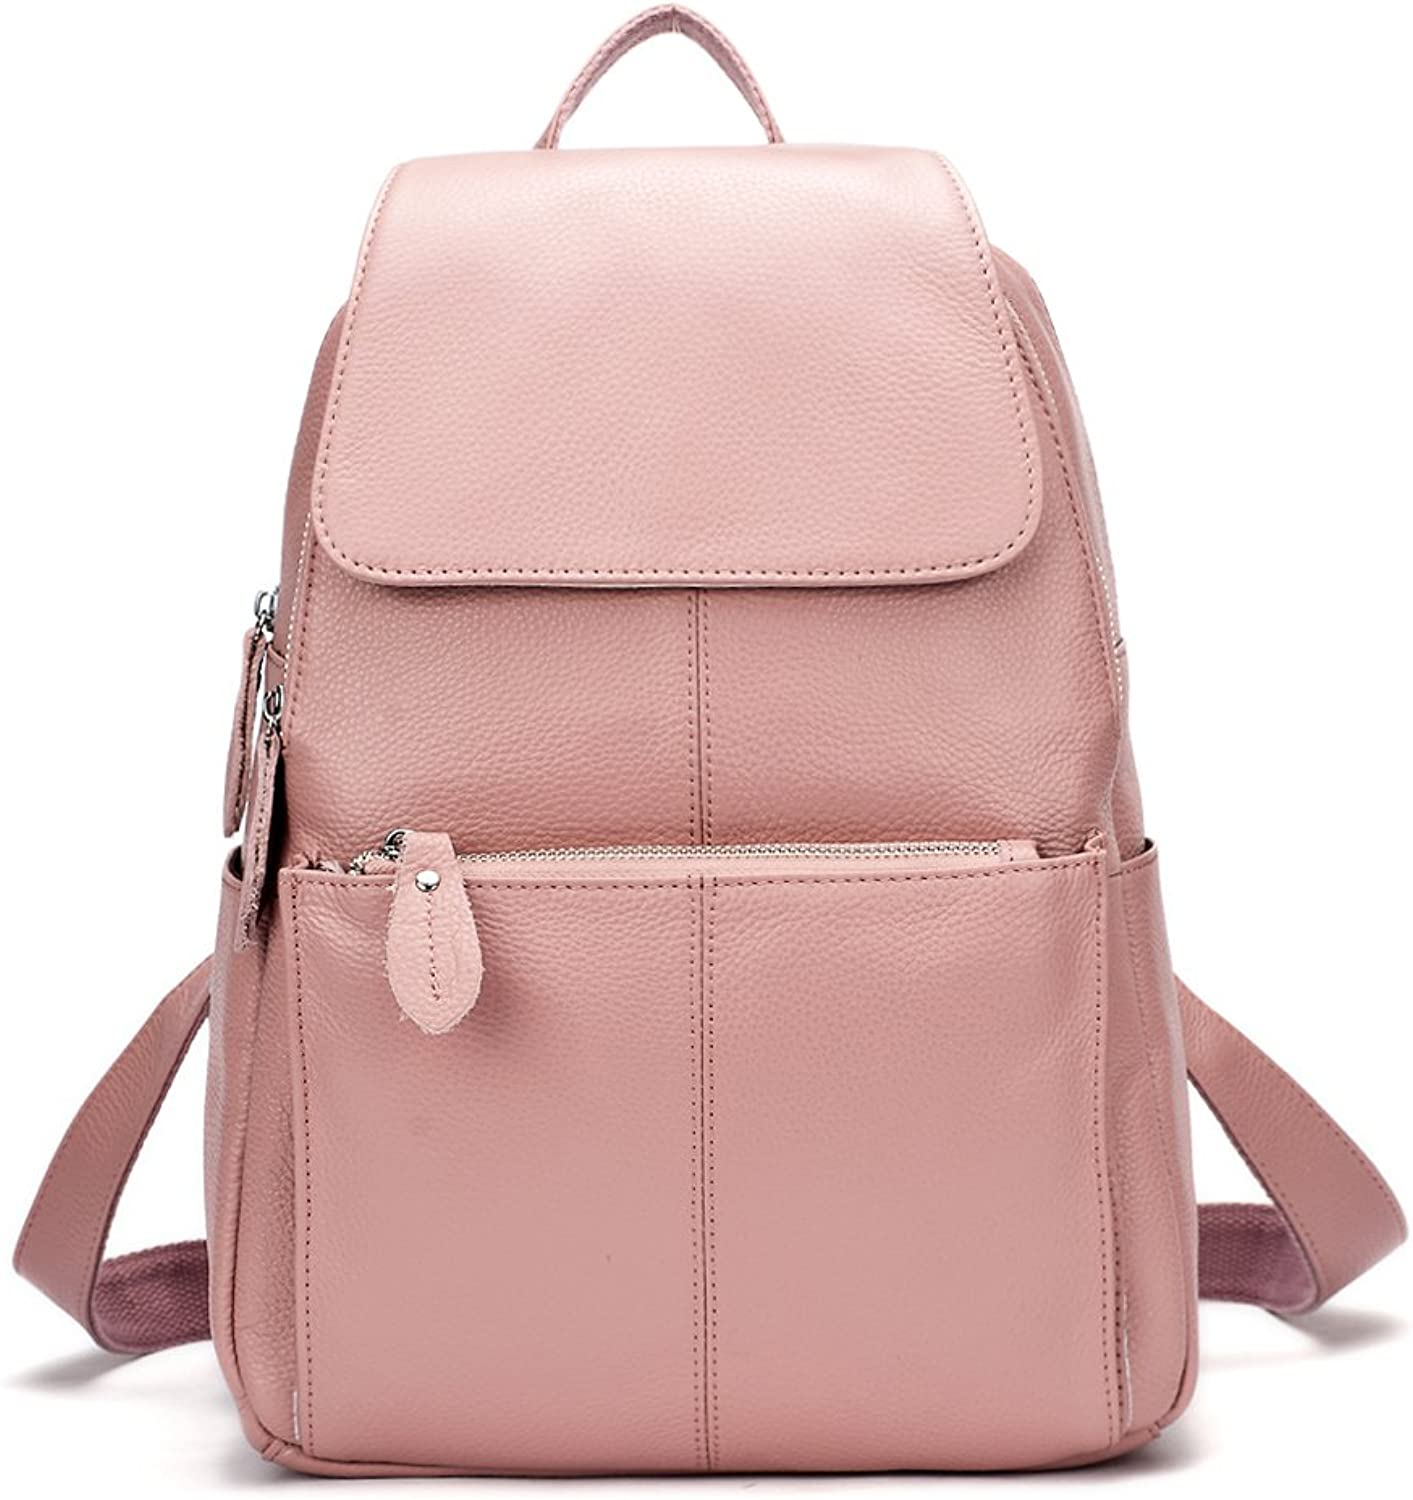 15 colors Real Soft Leather Women Backpack Fashion Ladies Travel Bag Preppy Style Schoolbags for Girls (Purple Pink)